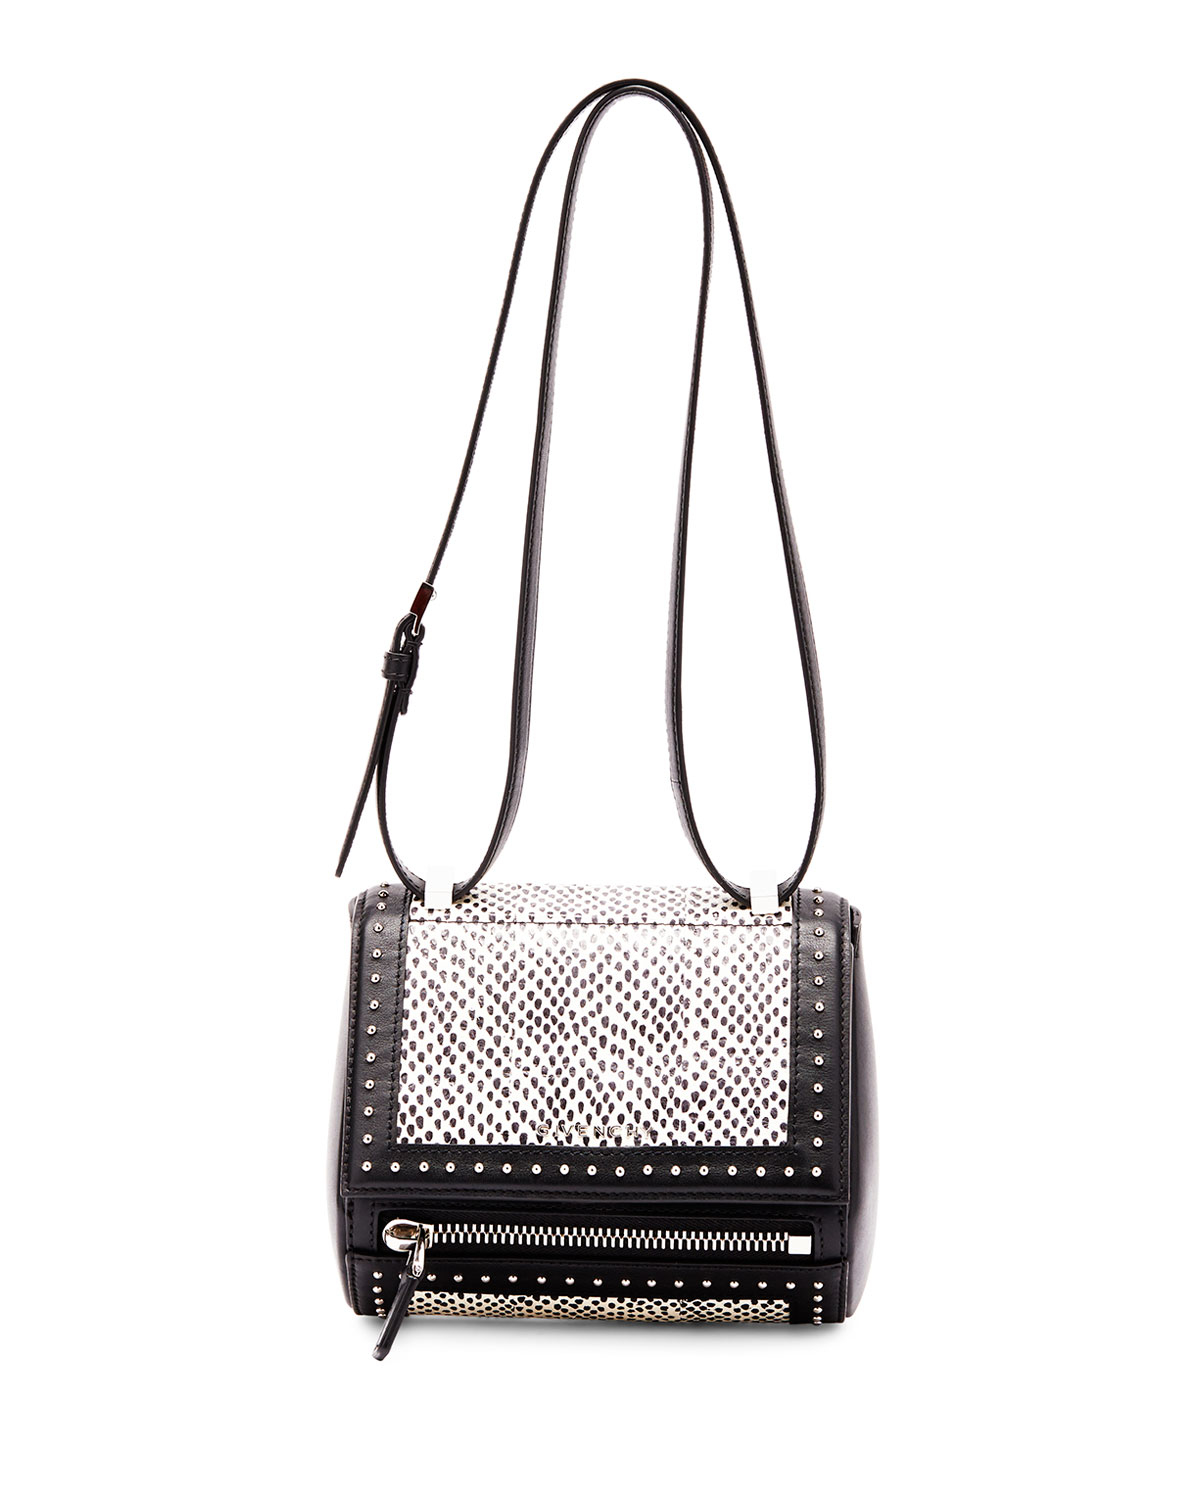 Givenchy Pandora Box Mini Snakeskin Shoulder Bag In Black